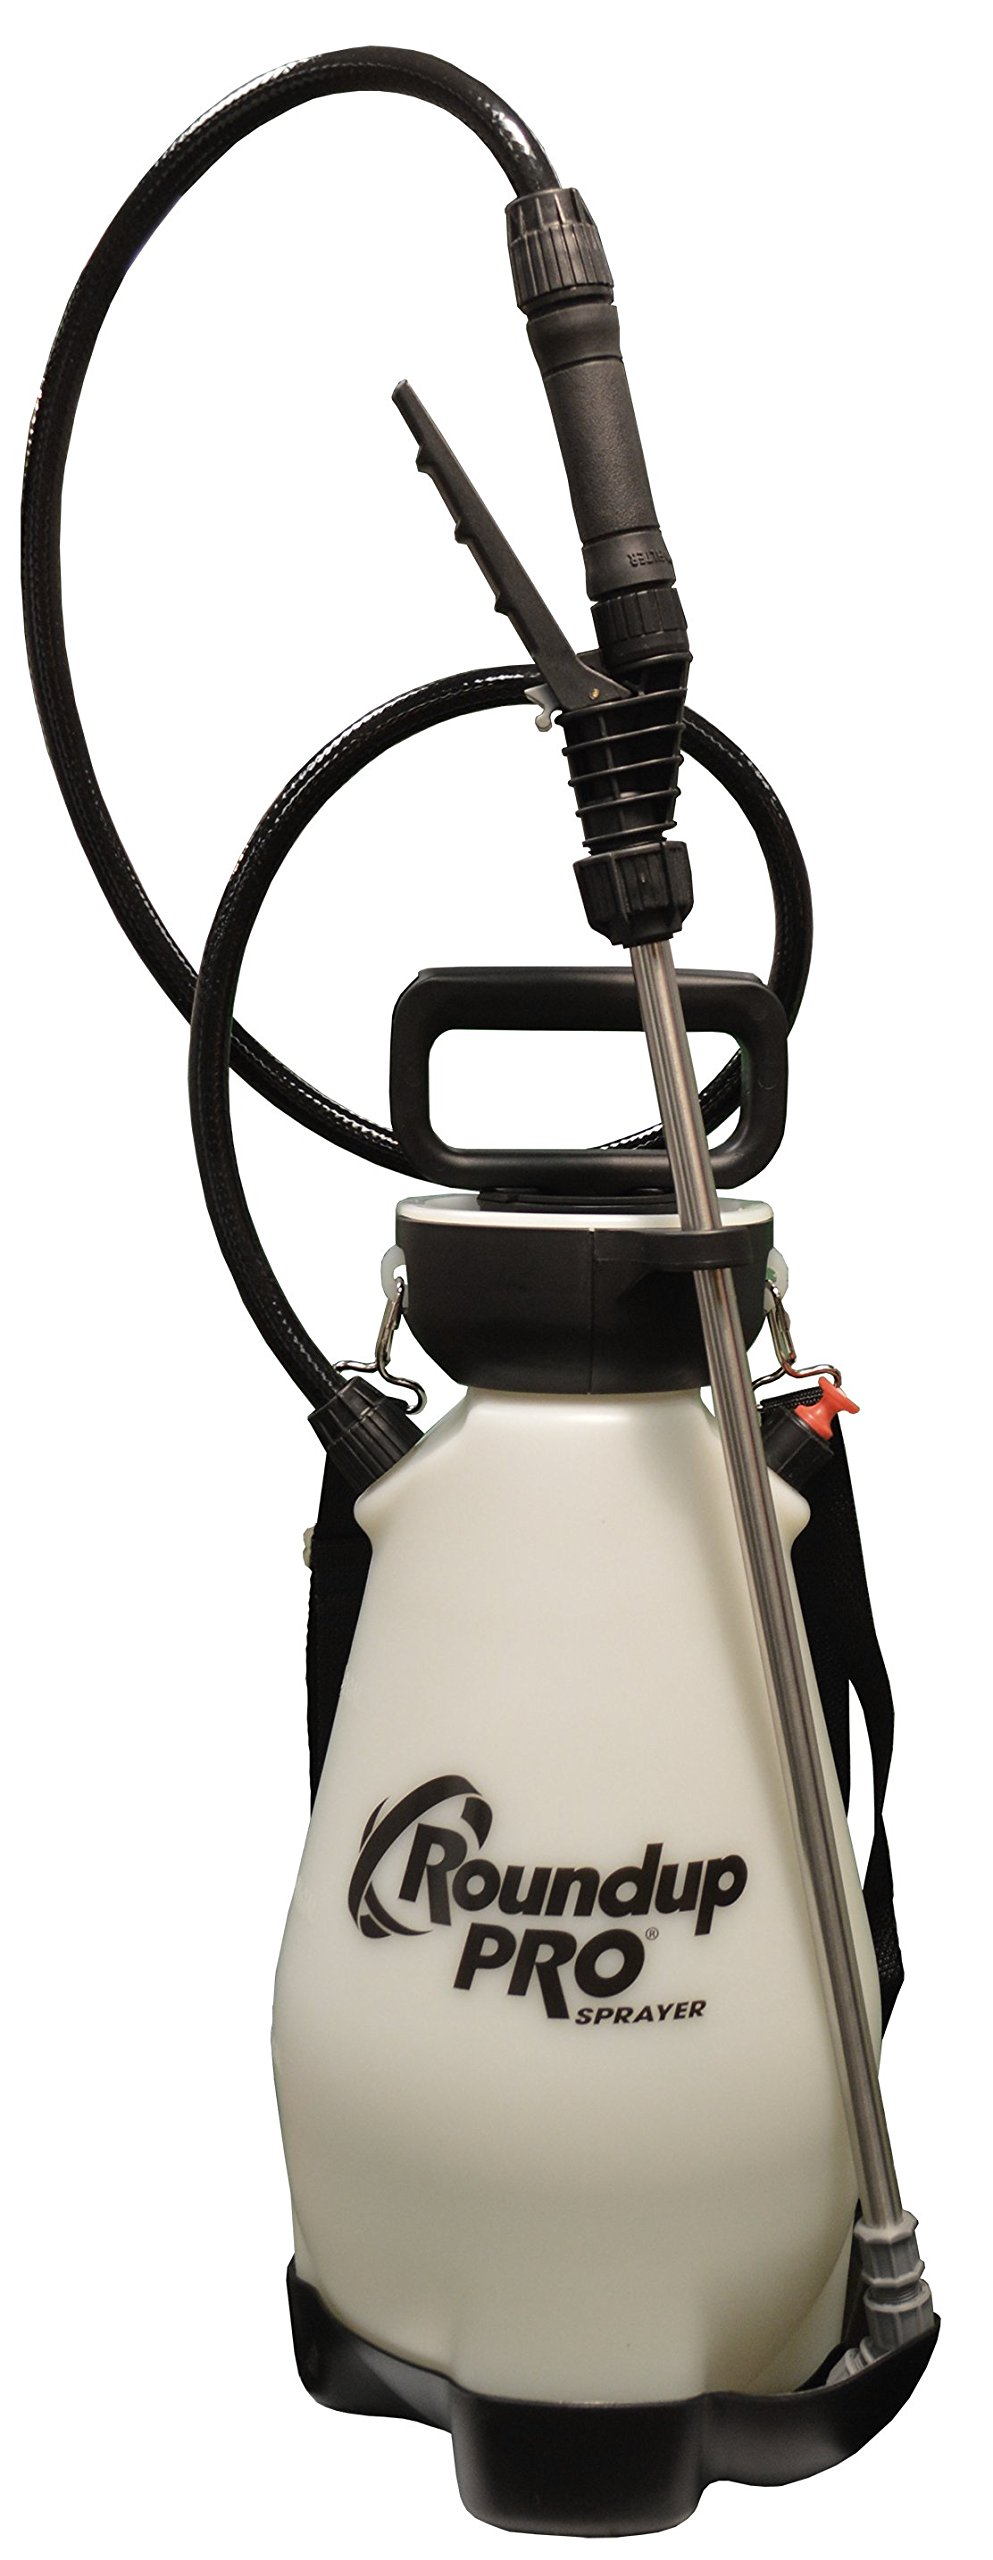 Roundup PRO 190410 2-Gallon Sprayer for Applying Fertilizers, Weed Killers, and Herbicides by Roundup